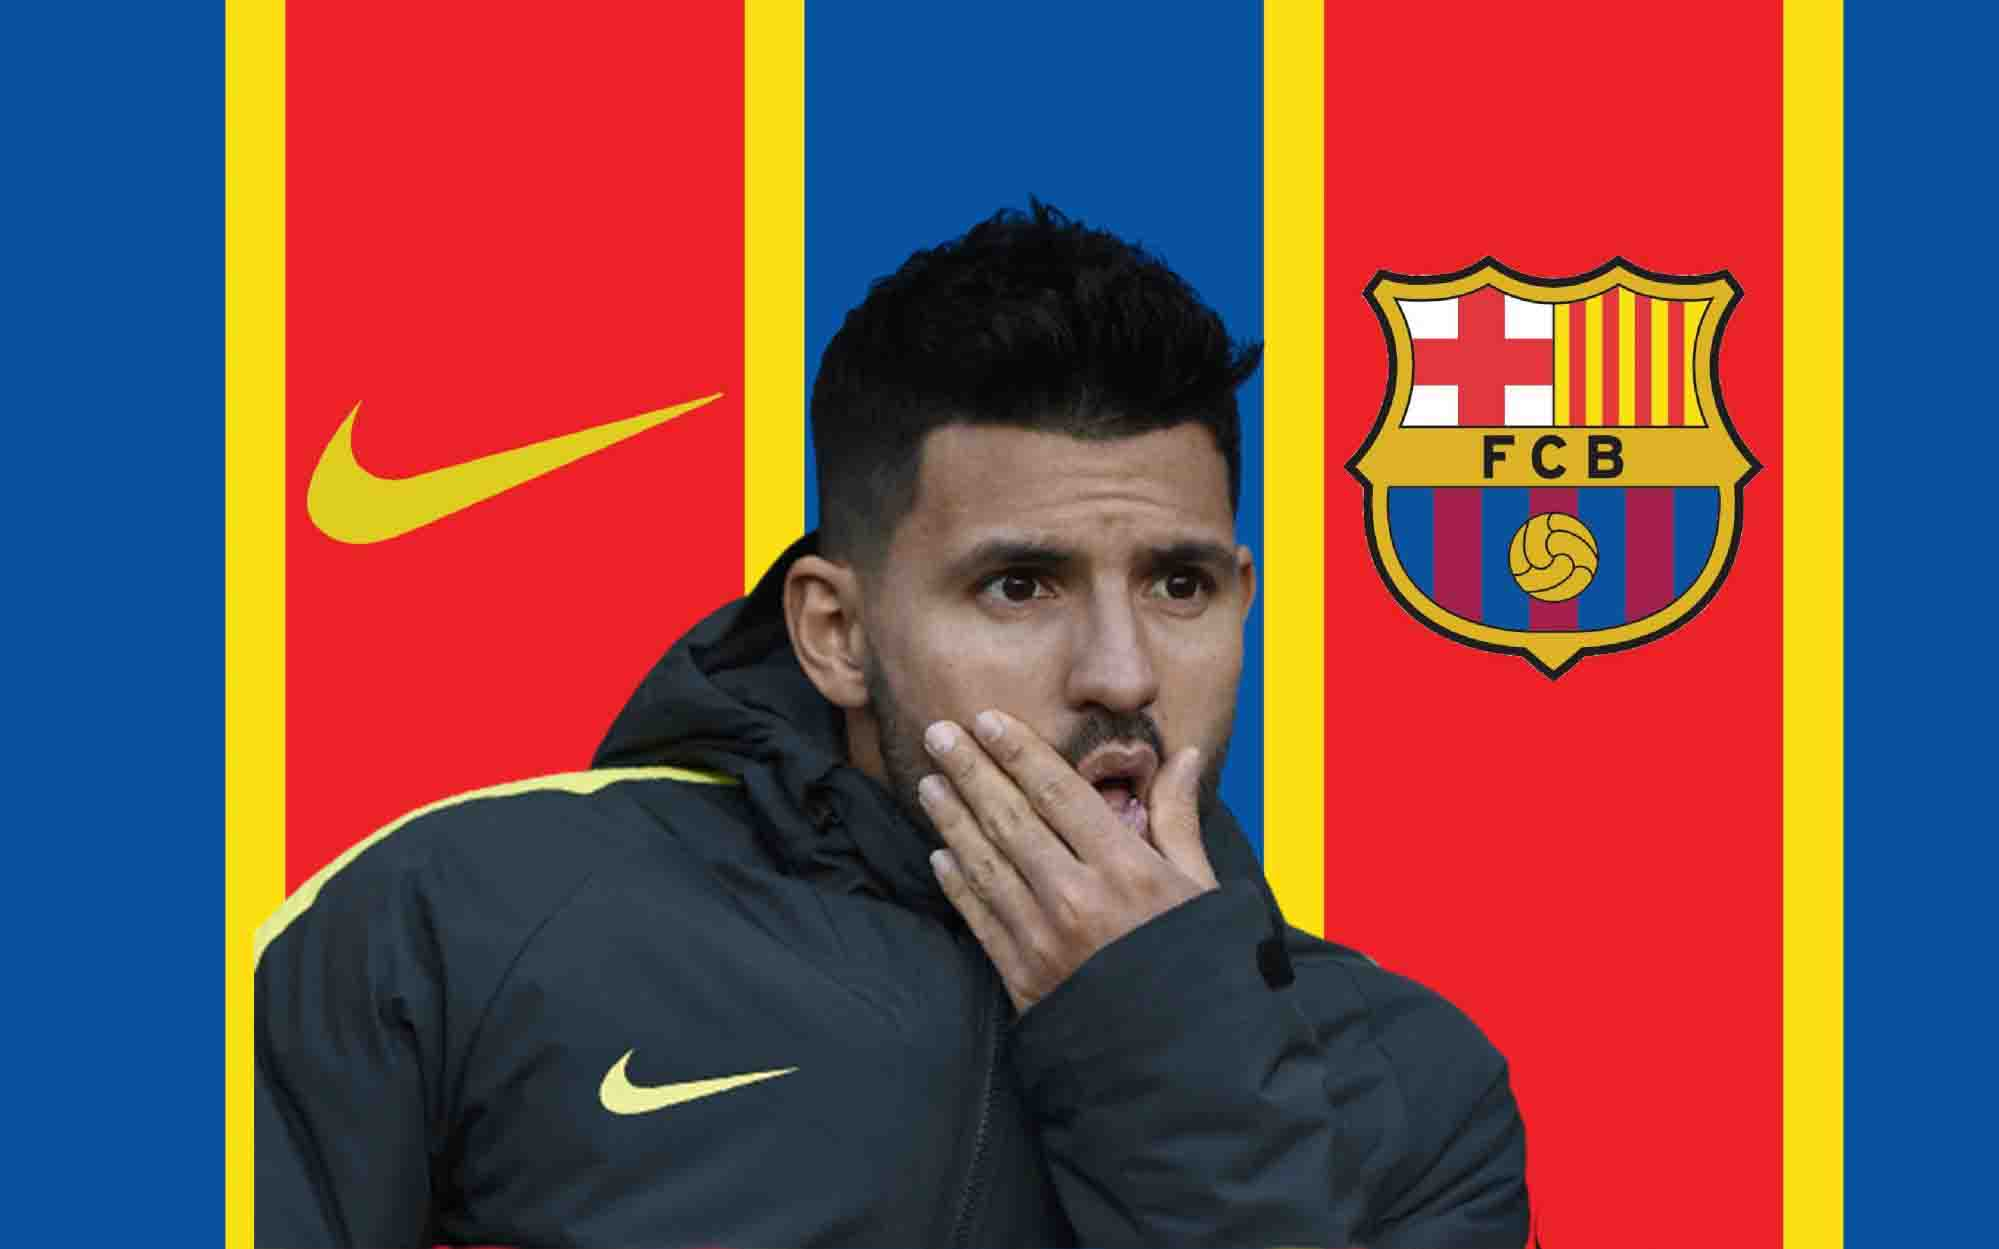 EL MUNDO DEPORTIVO AGUERO WILL HAVE A MEDICAL EXAMINATION AND SIGN A CONTRACT WITH BARCELONA AFTER THE UCL FINAL